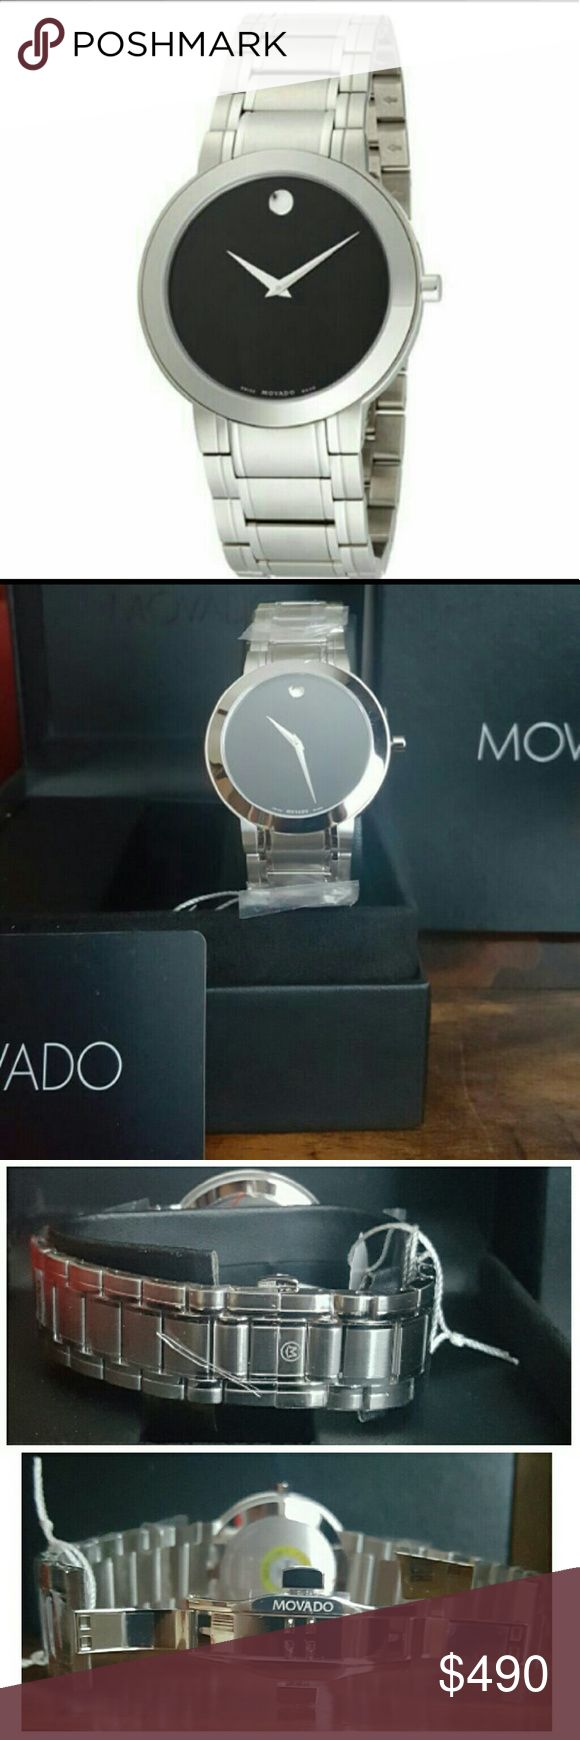 NWT Movado $995 Stiri Stainless steel Men's watch NWT Movado $995 Men's STIRI STAINLESS STEEL Watch  Firm price?firm price firm price firm price firm price firm price   $490.00 . AUTHENTIC WATCH? . AUTHENTIC BOX? . AUTHENTIC MANUAL?  SHIPPING? PLEASE ALLOW FEW BUSINESS DAYS FOR ME TO SHIPPED IT OFF.  THANK YOU FOR YOUR UNDERSTANDING. Movado  Accessories Watches